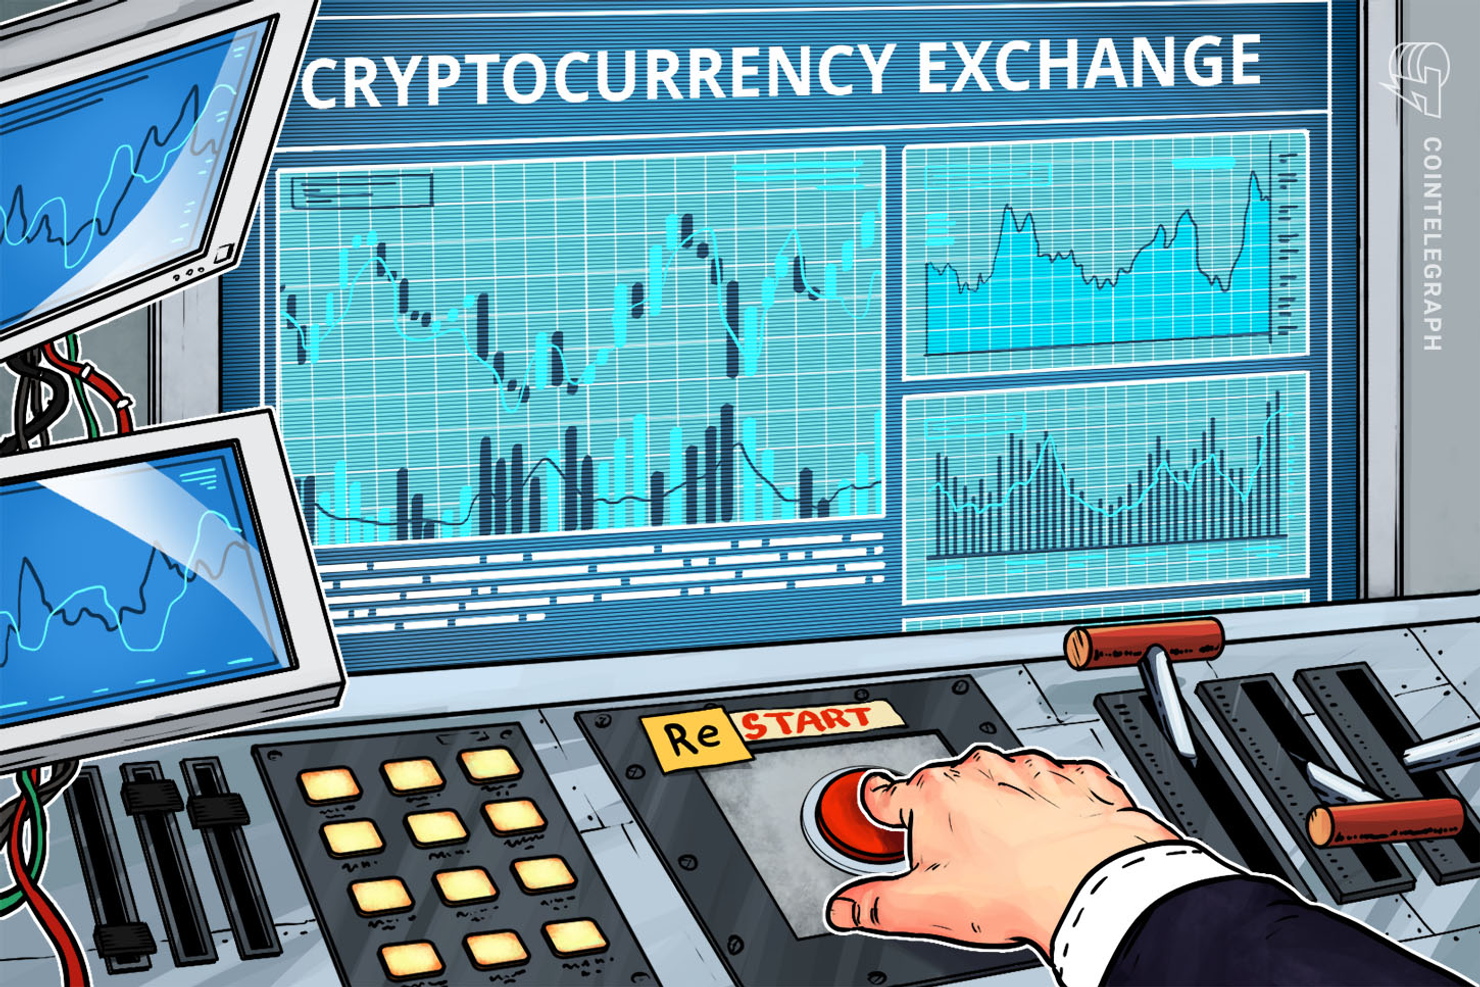 Cryptocurrencies will be shut down